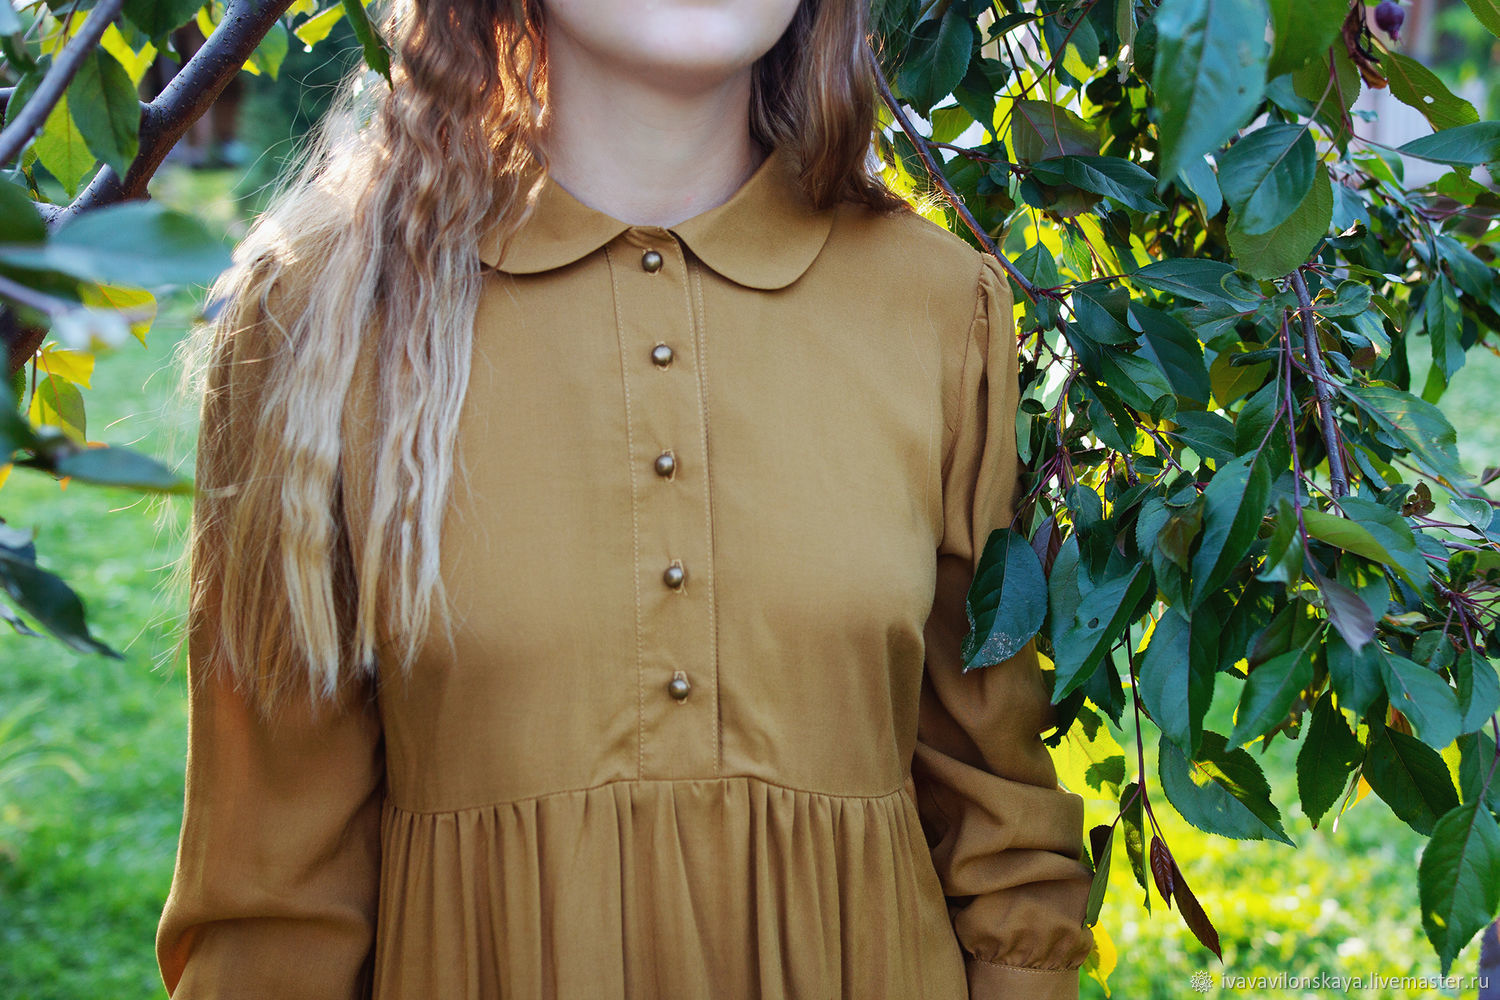 Cotton dress with a dark mustard collar, Dresses, Moscow,  Фото №1